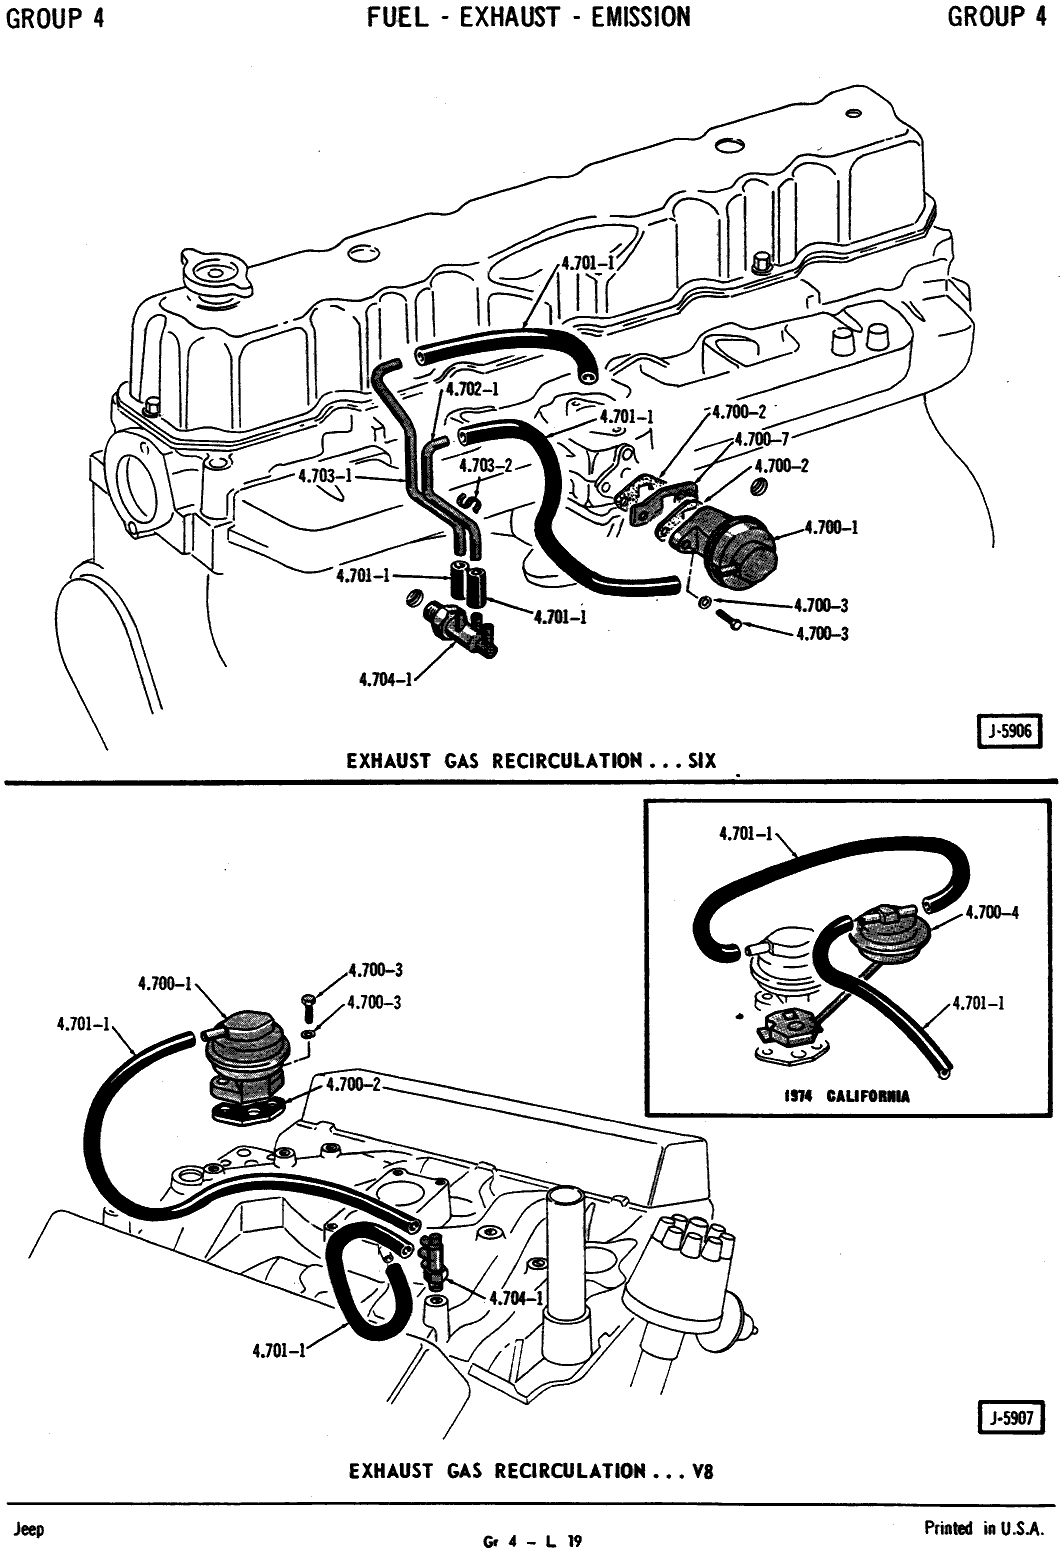 1976 jeep cj7 i258 engine wiring